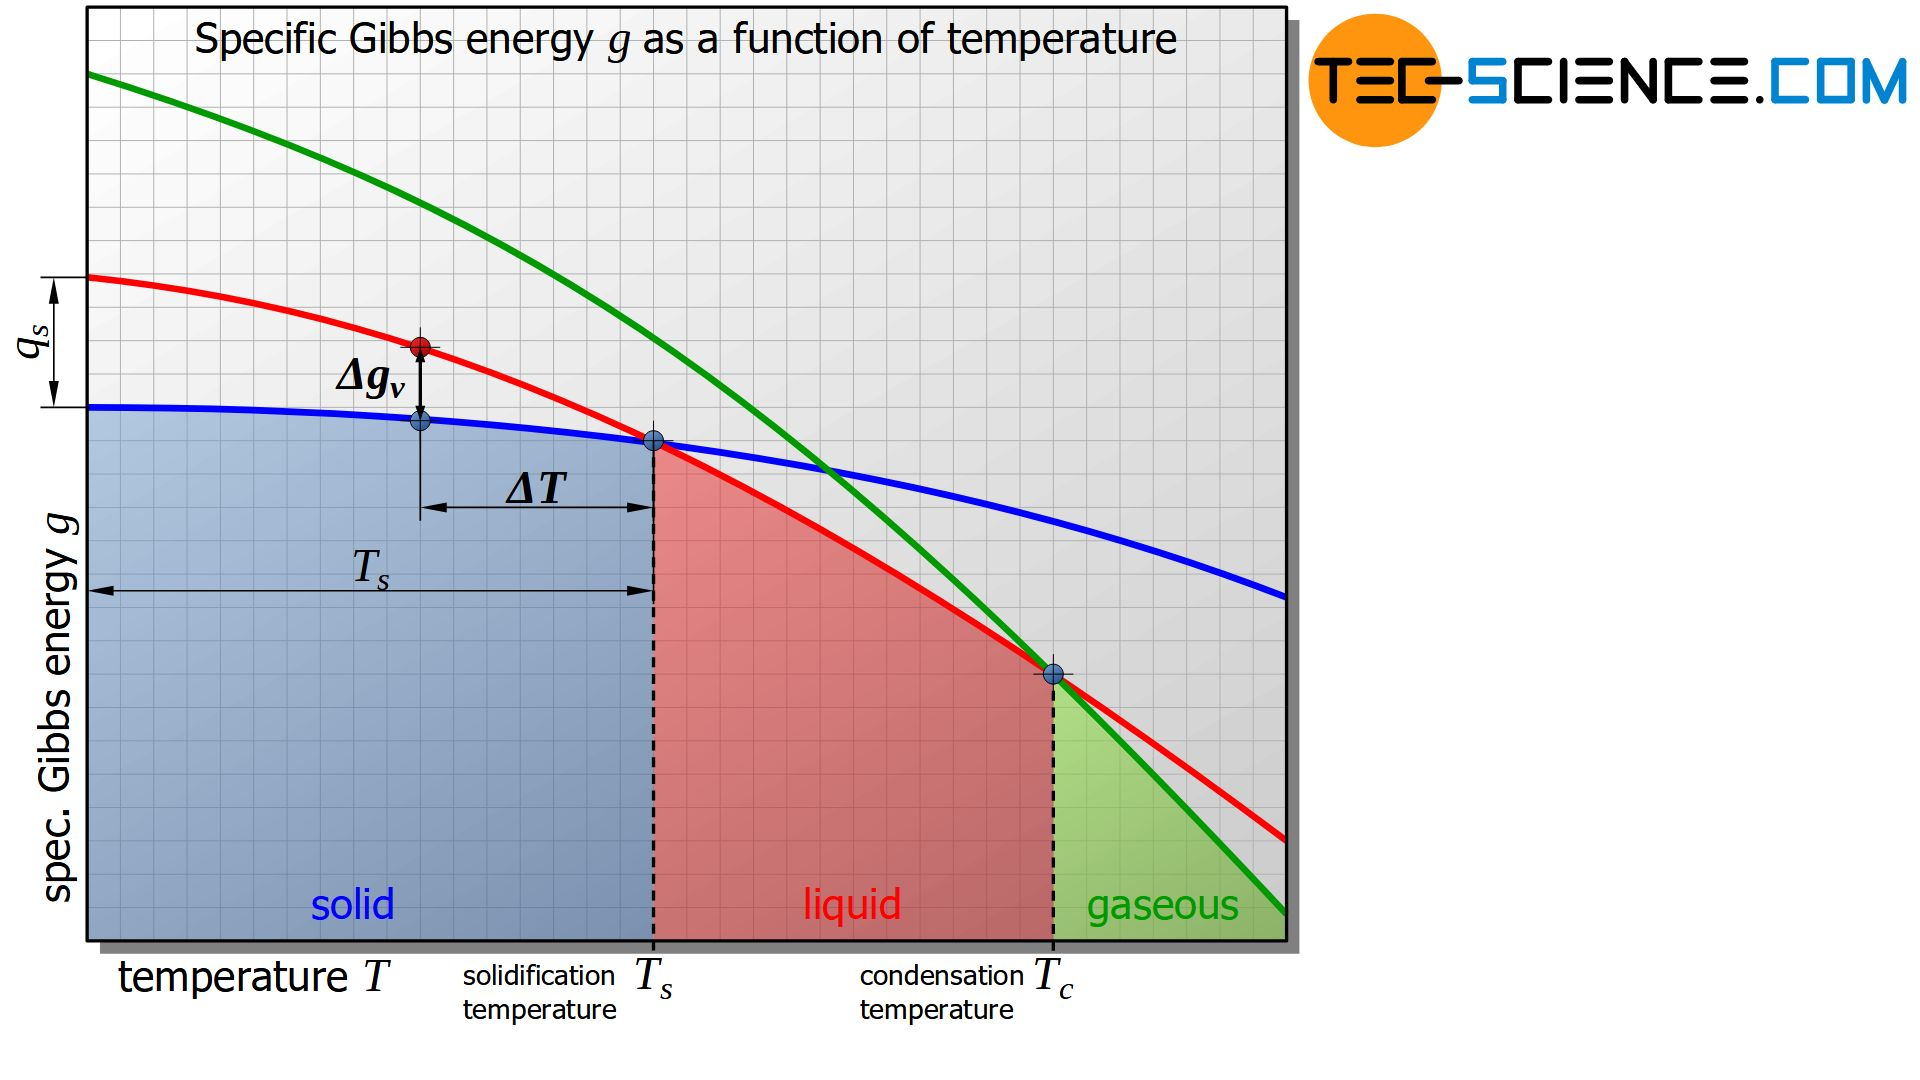 Specific Gibbs energy as a function of temperature